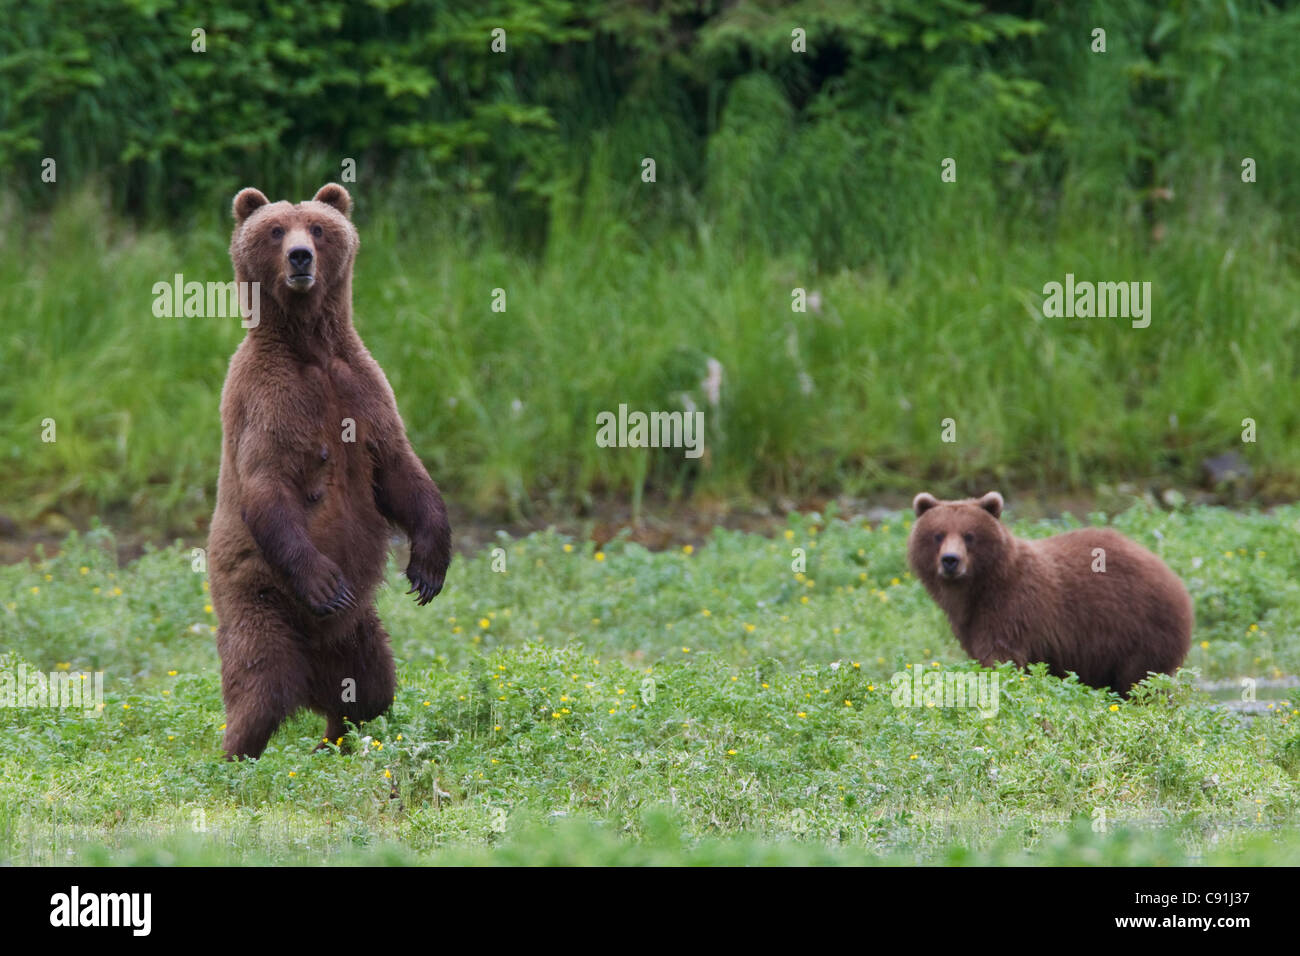 Brown bear sow standing alert with yearling cub in background, Prince William Sound, Southcentral Alaska, Summer Stock Photo